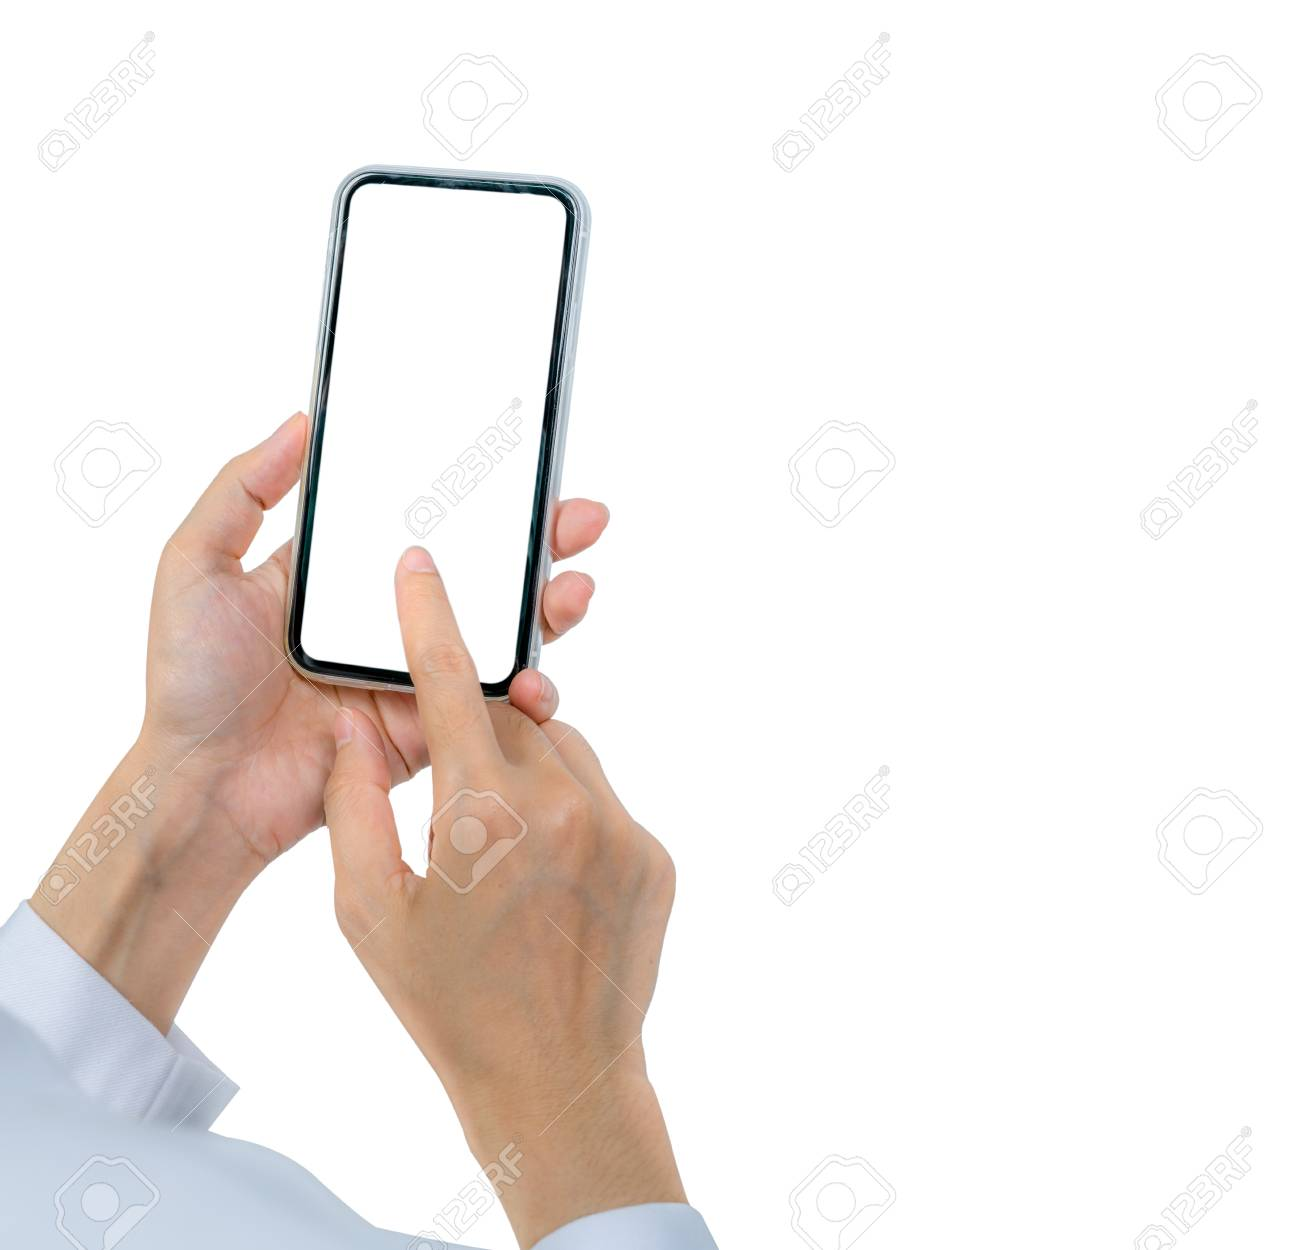 Woman's hand holding and using smartphone. Closeup hand touching smartphone with blank screen isolated on white background and copy space for text. Mobile phone with blank screen. Online marketing. - 118192183